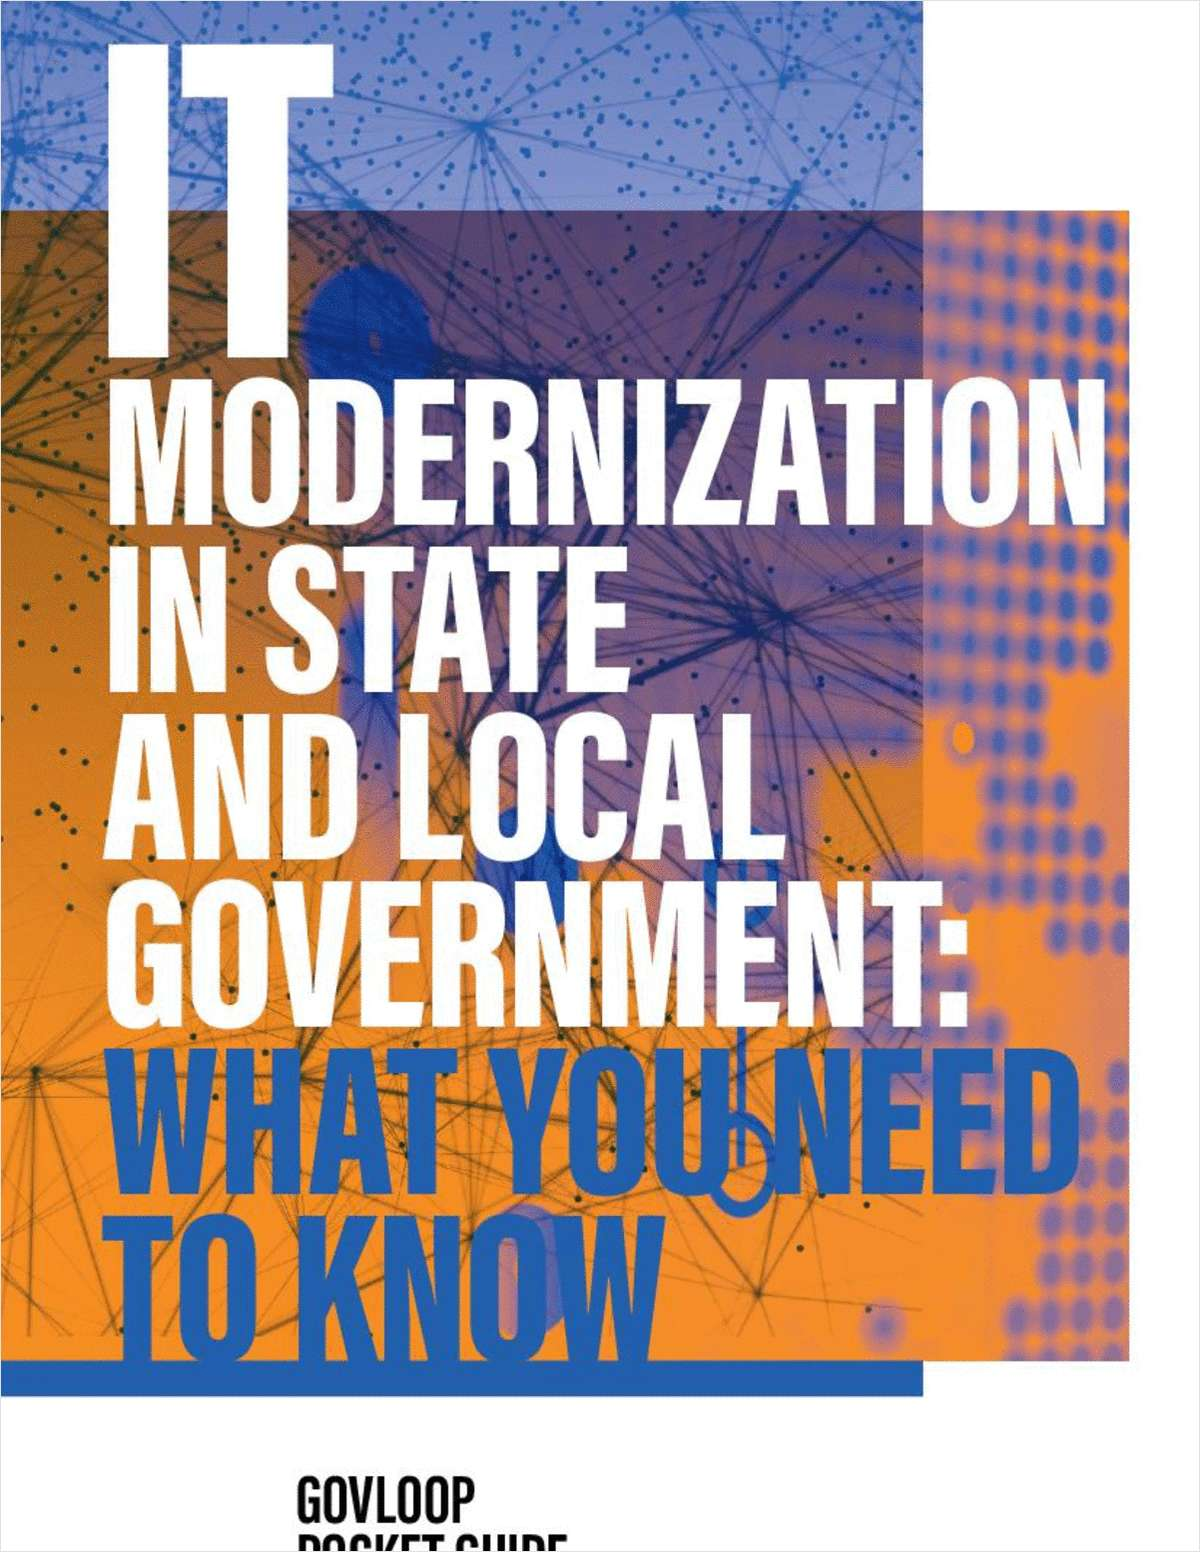 IT Modernization in State and Local Government